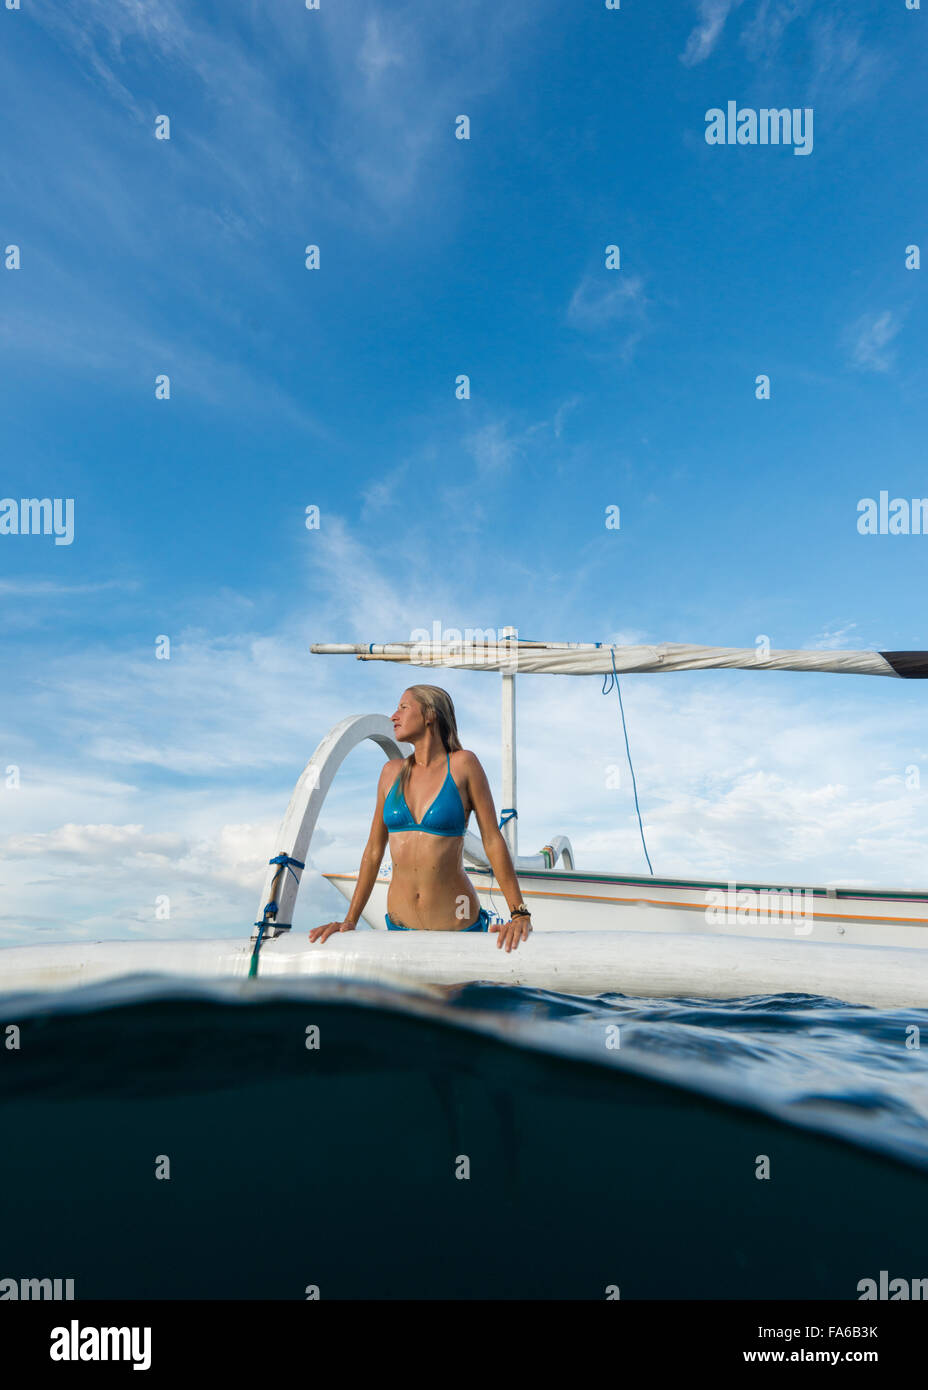 Woman getting out of the sea onto a boat, Bali, Indonesia - Stock Image